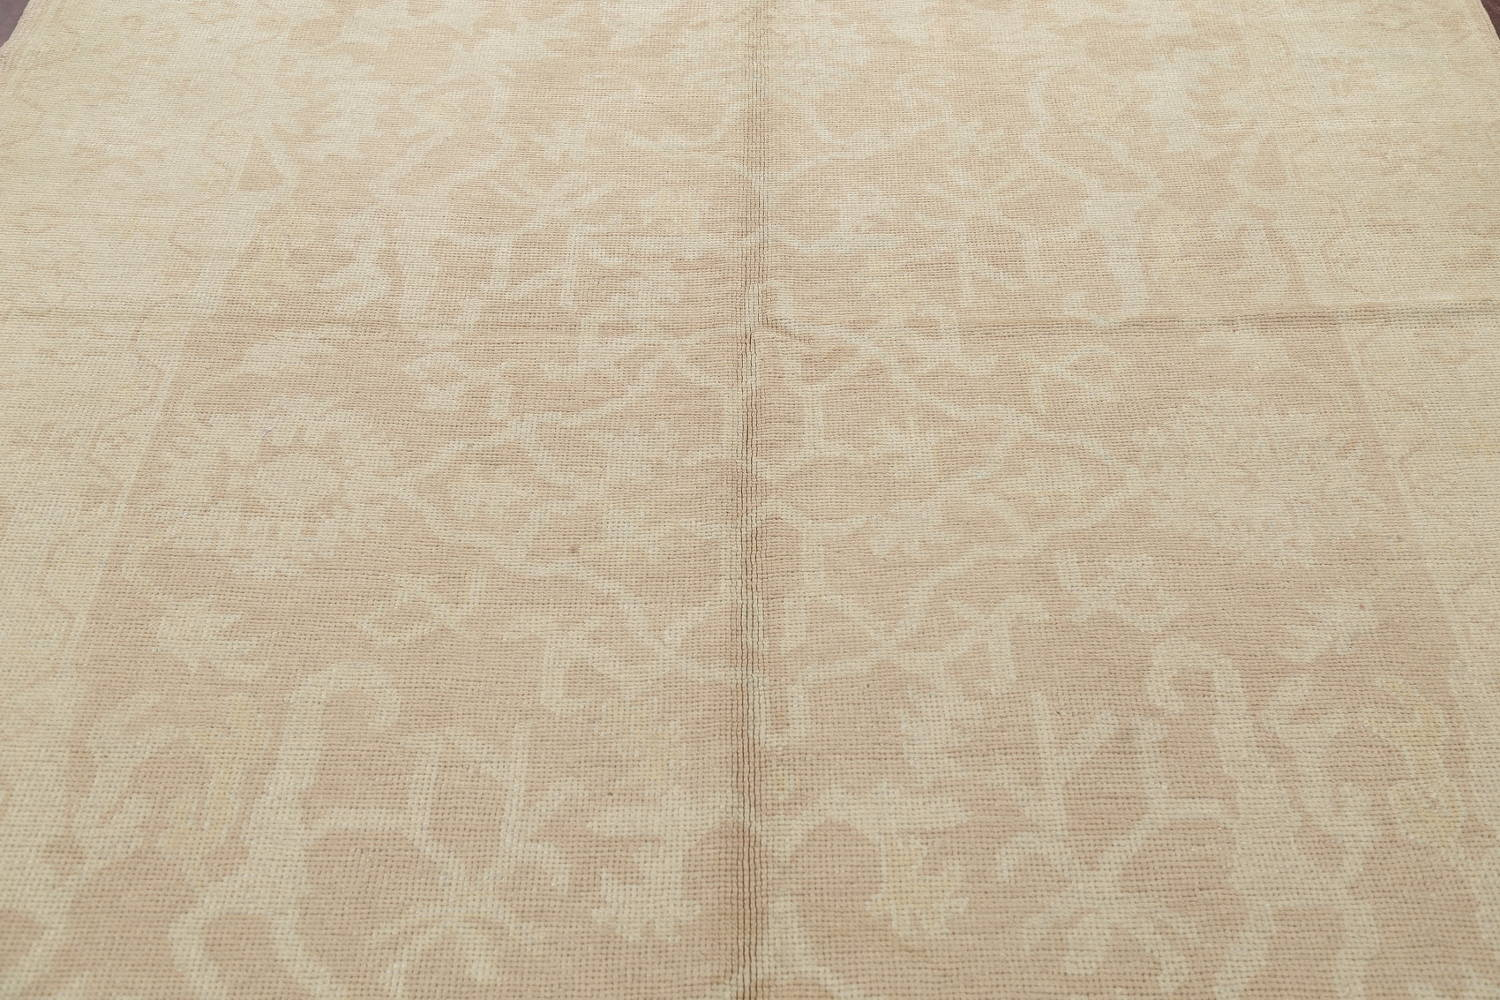 Vegetable Dye Muted Gold Oushak Turkish Hand-Knotted Runner Rug 7x16 image 11